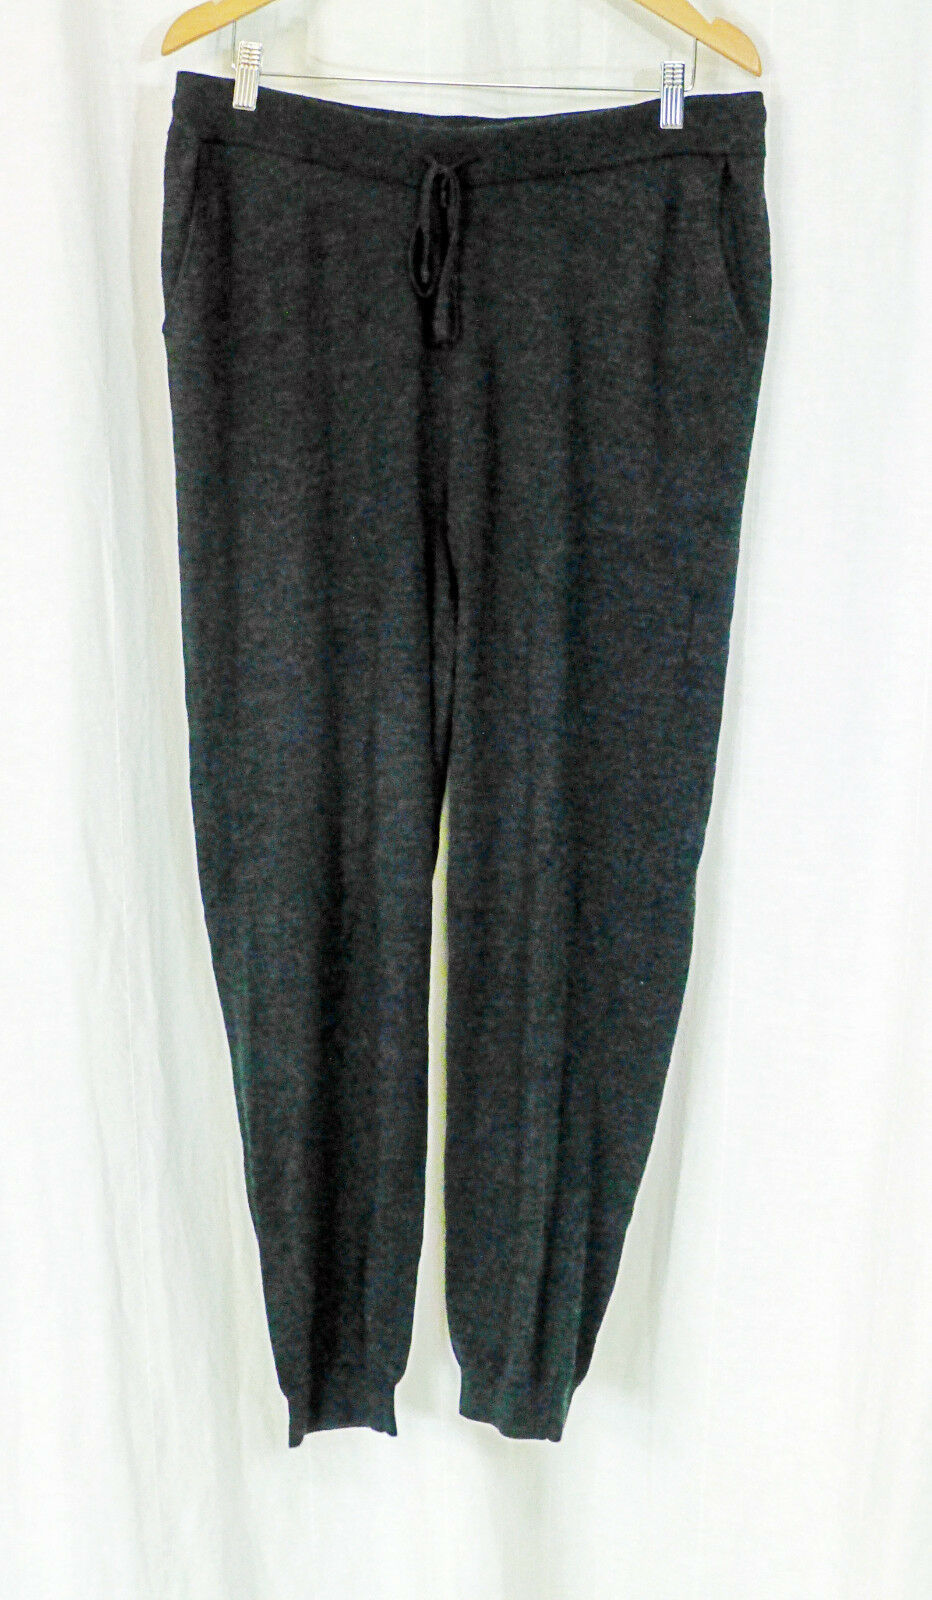 EILEEN FISHER CHARCOAL WOOL SWEATER KNIT TIE WAIST SLOUCHY LOUNGE PANT M LN FALL